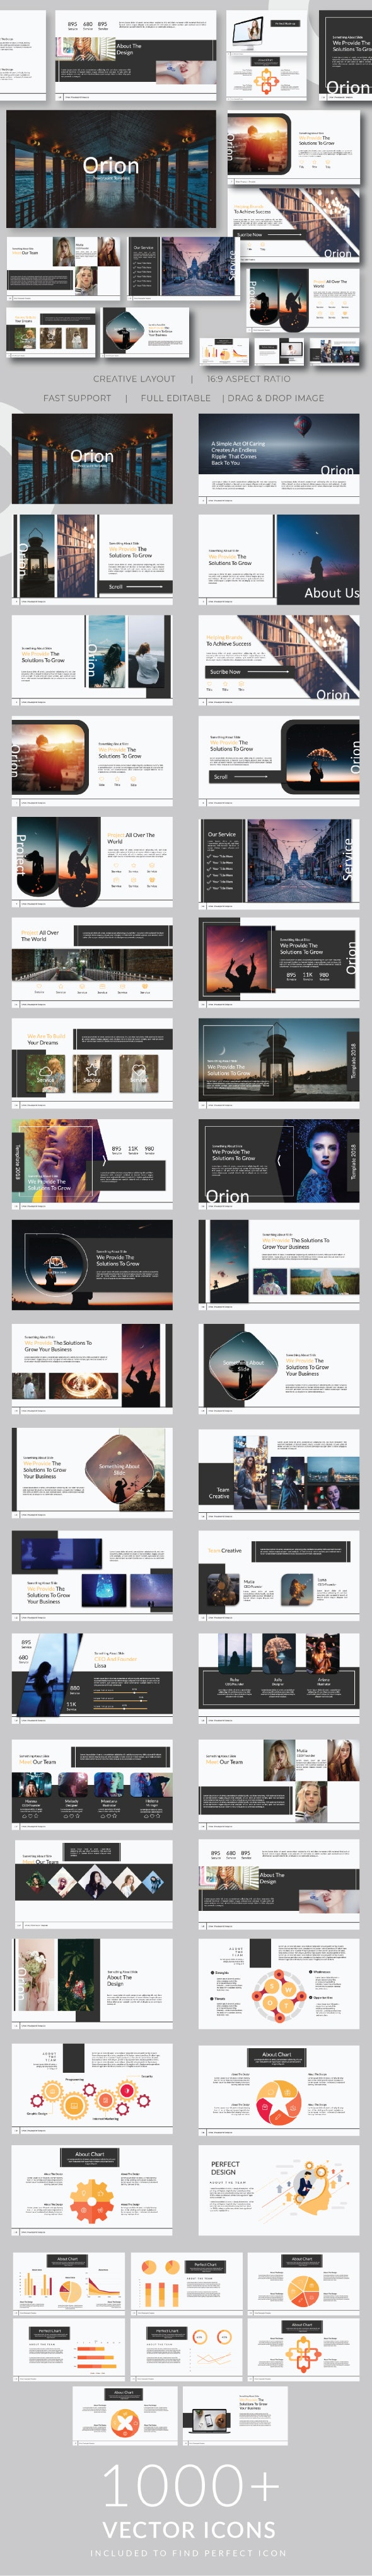 Orion Powerpoint Template - Business PowerPoint Templates